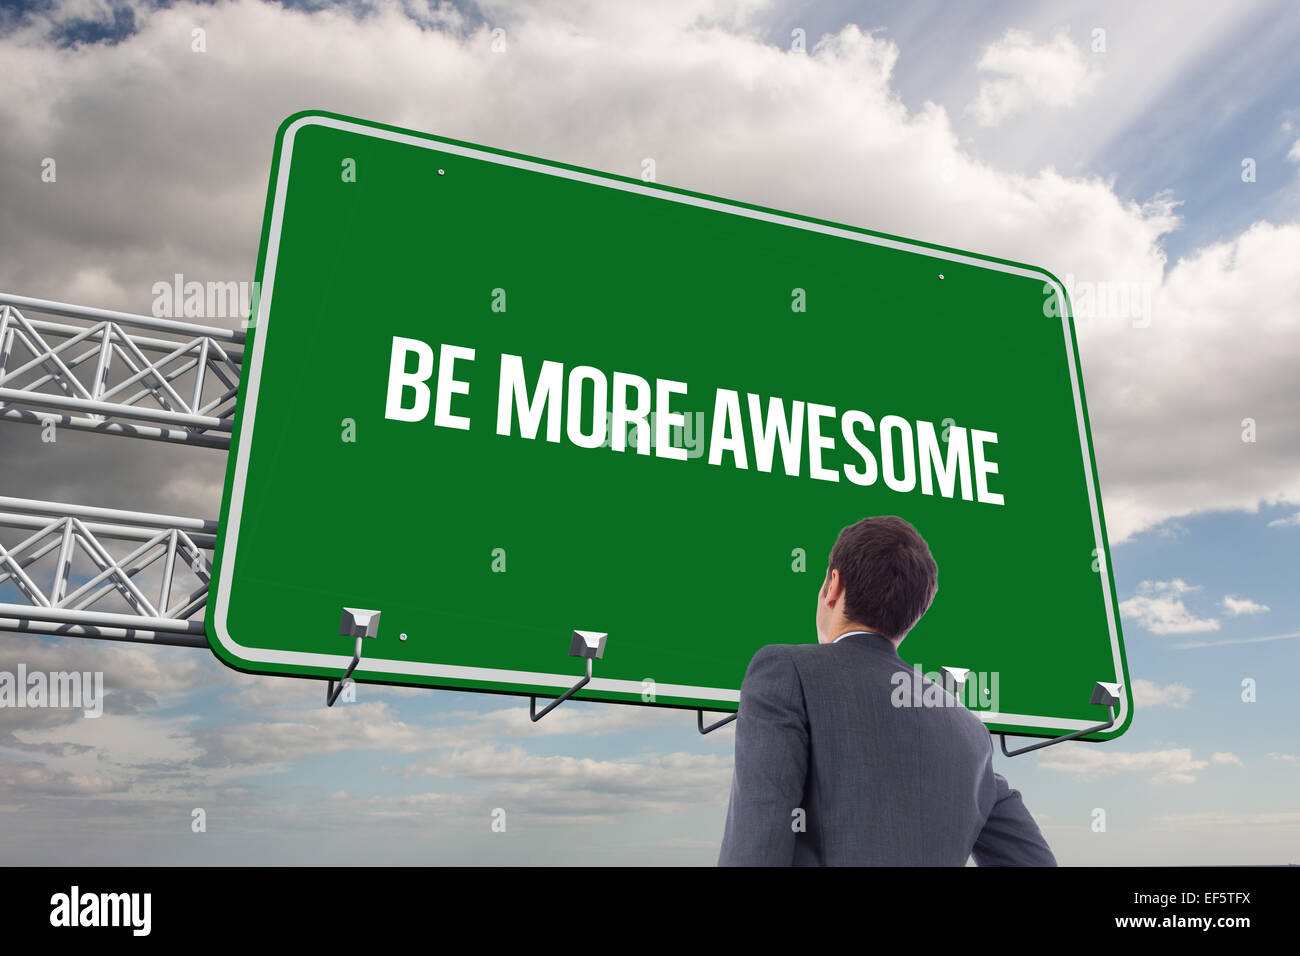 Be more awesome against sky - Stock Image